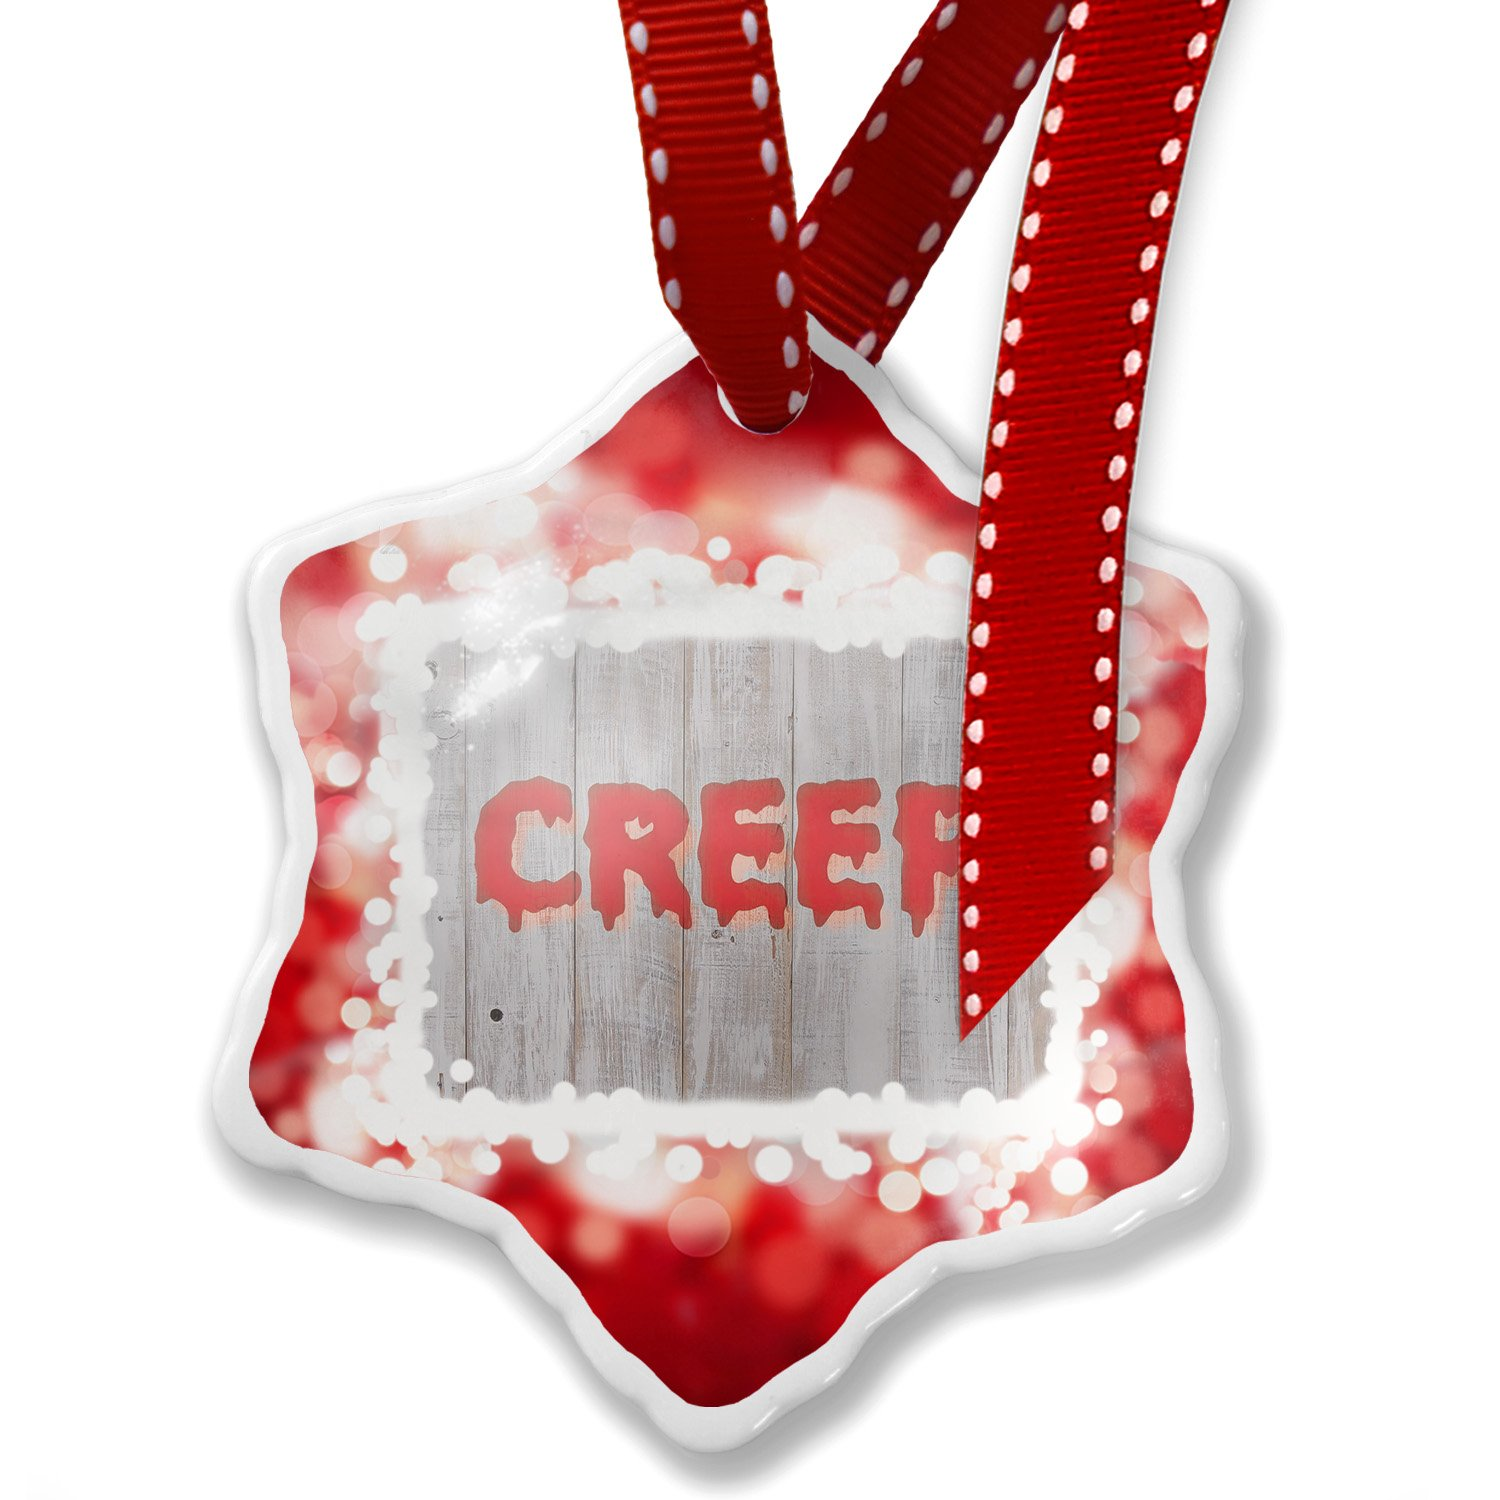 Christmas Ornament Creep Halloween Bloody Wall, red - Neonblond